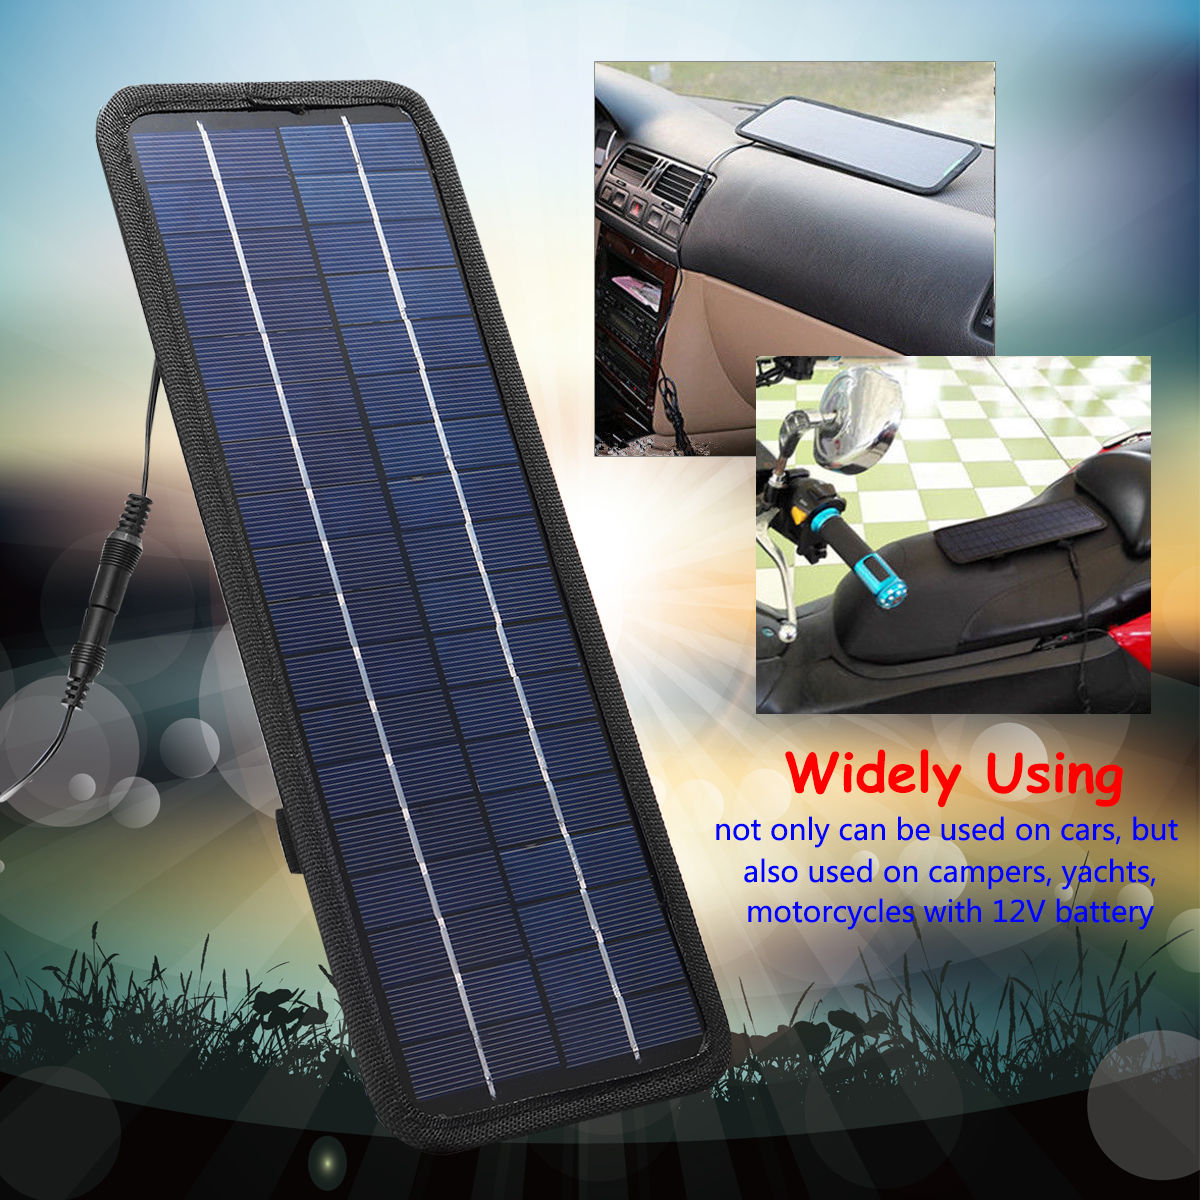 4.5W 12V Portable Boat Car Solar Panel  Single Crystal Silicon Trickle Battery Charger USB Outdoor PowerLightweight Safe Protect4.5W 12V Portable Boat Car Solar Panel  Single Crystal Silicon Trickle Battery Charger USB Outdoor PowerLightweight Safe Protect